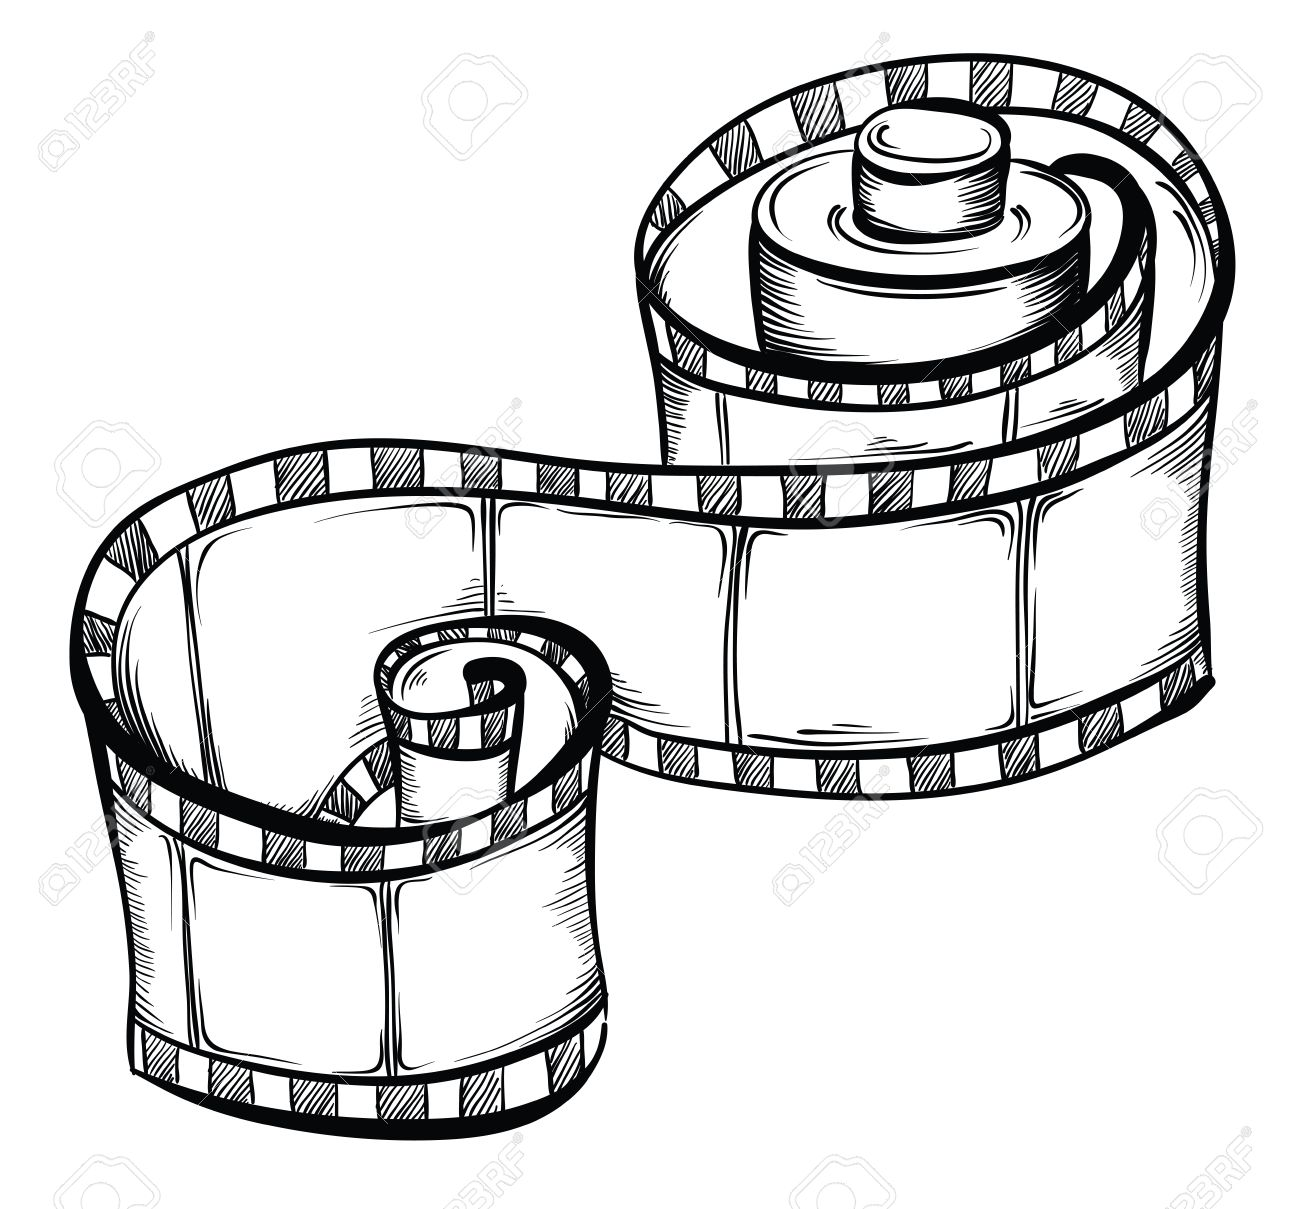 1300x1209 Film Strip. Vector Hand Drawn Illustration Royalty Free Cliparts